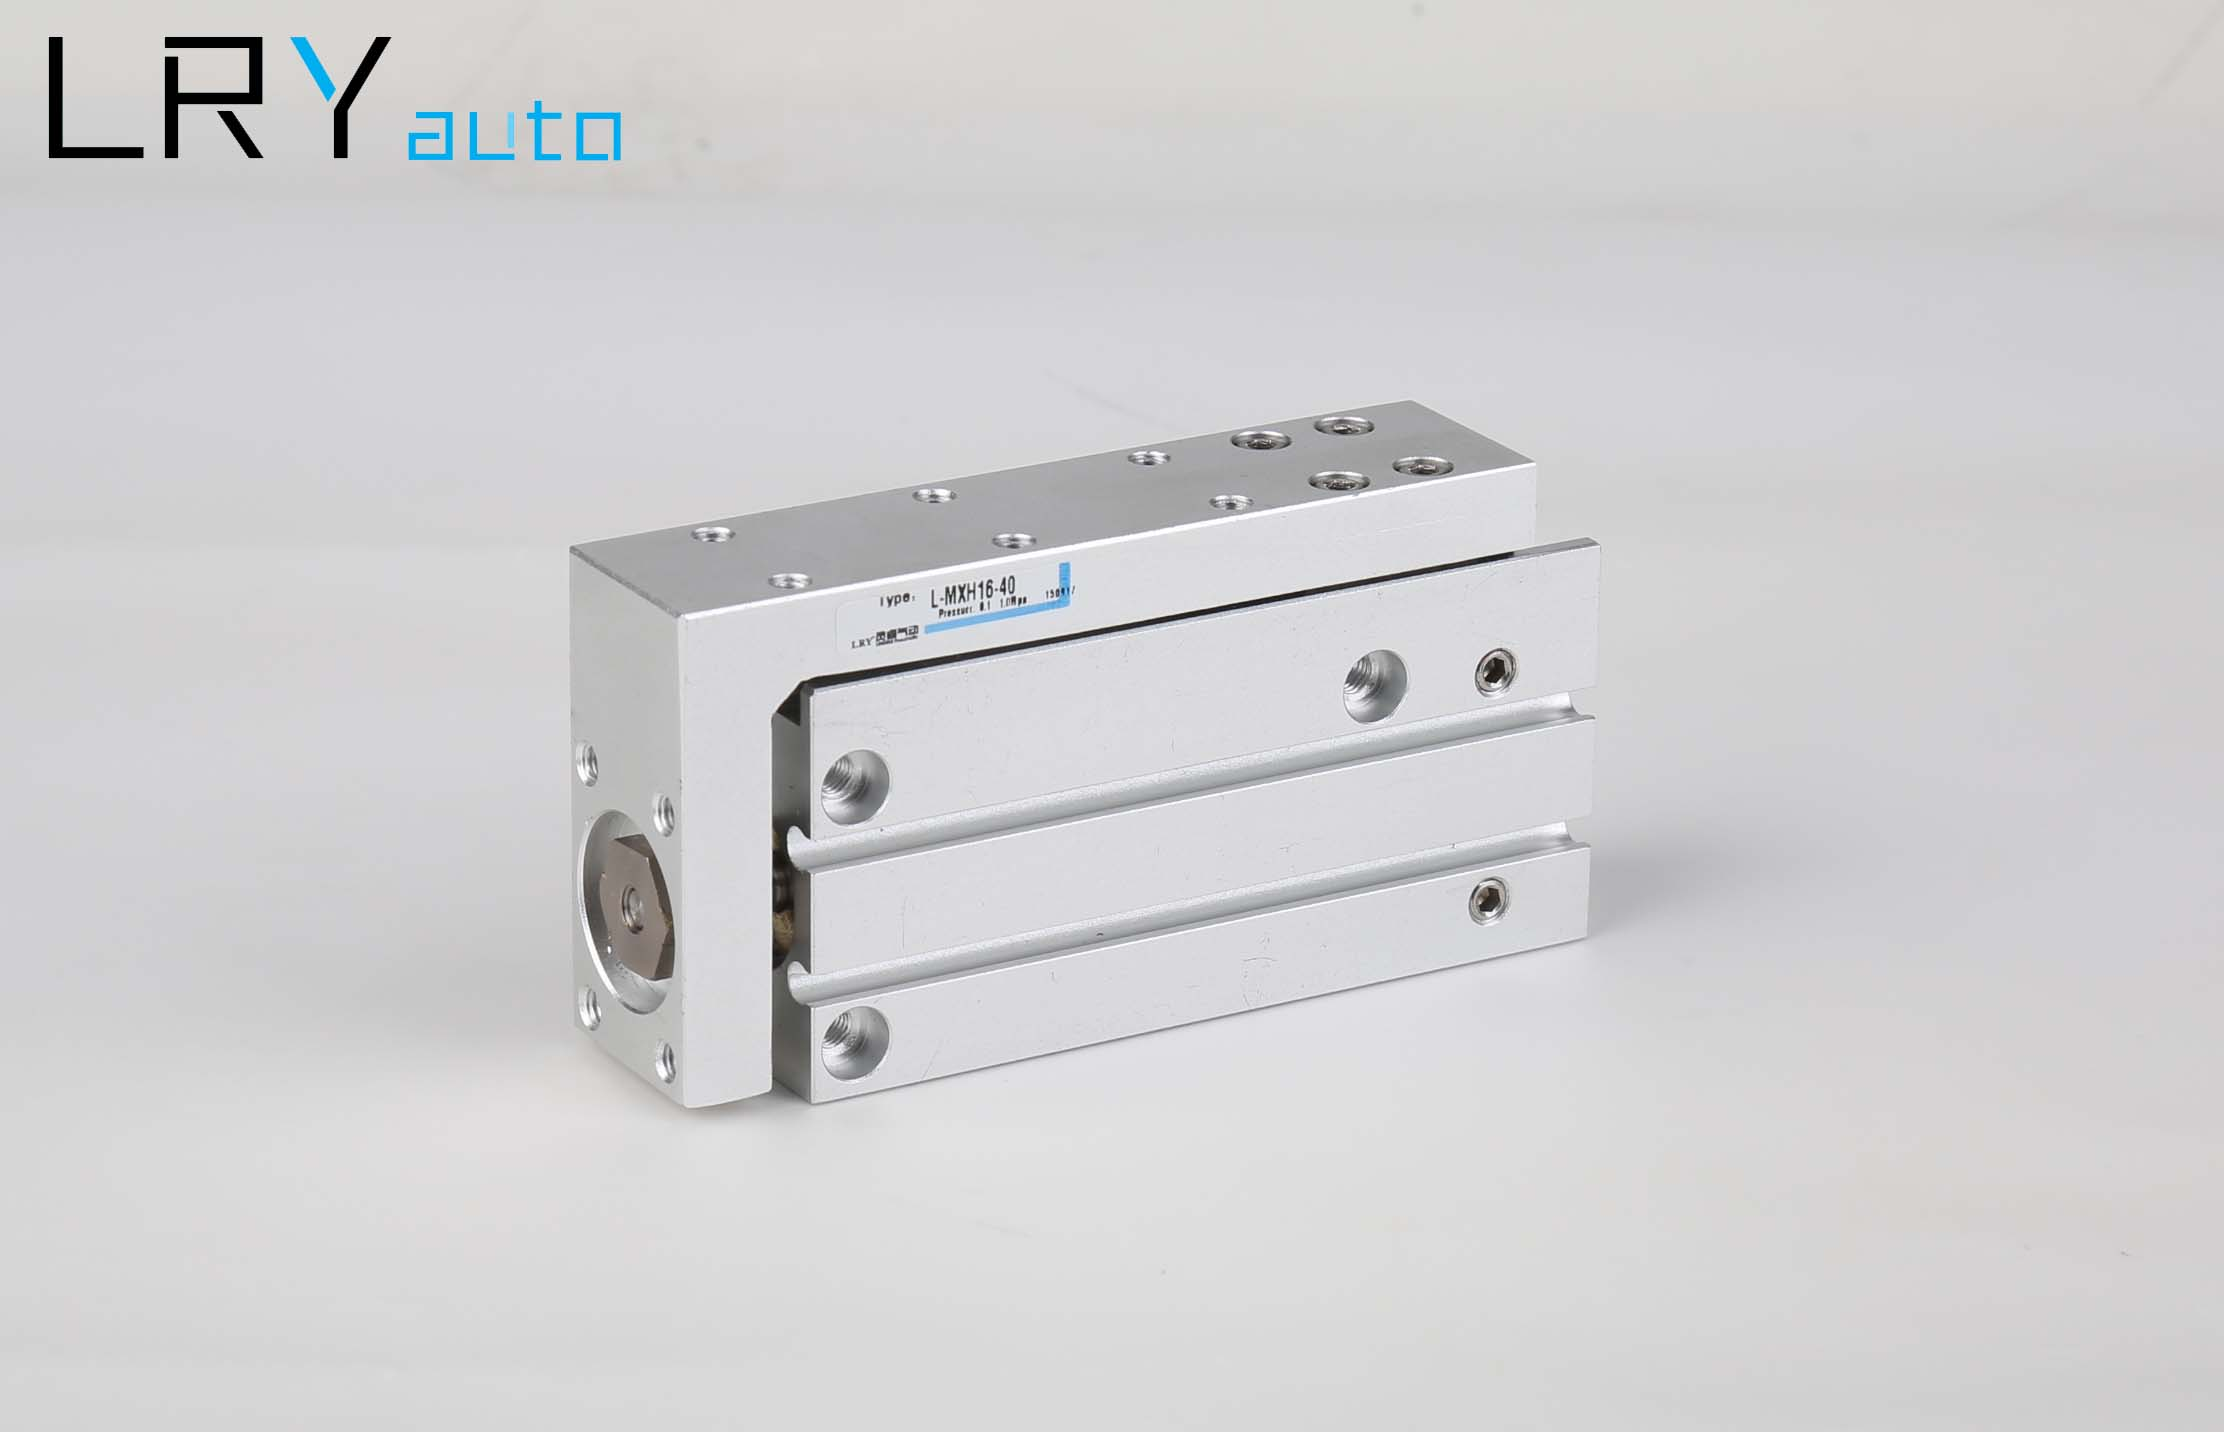 SMC Type Compact Slide Series Pneumatic Air Cylinder (Mxh)